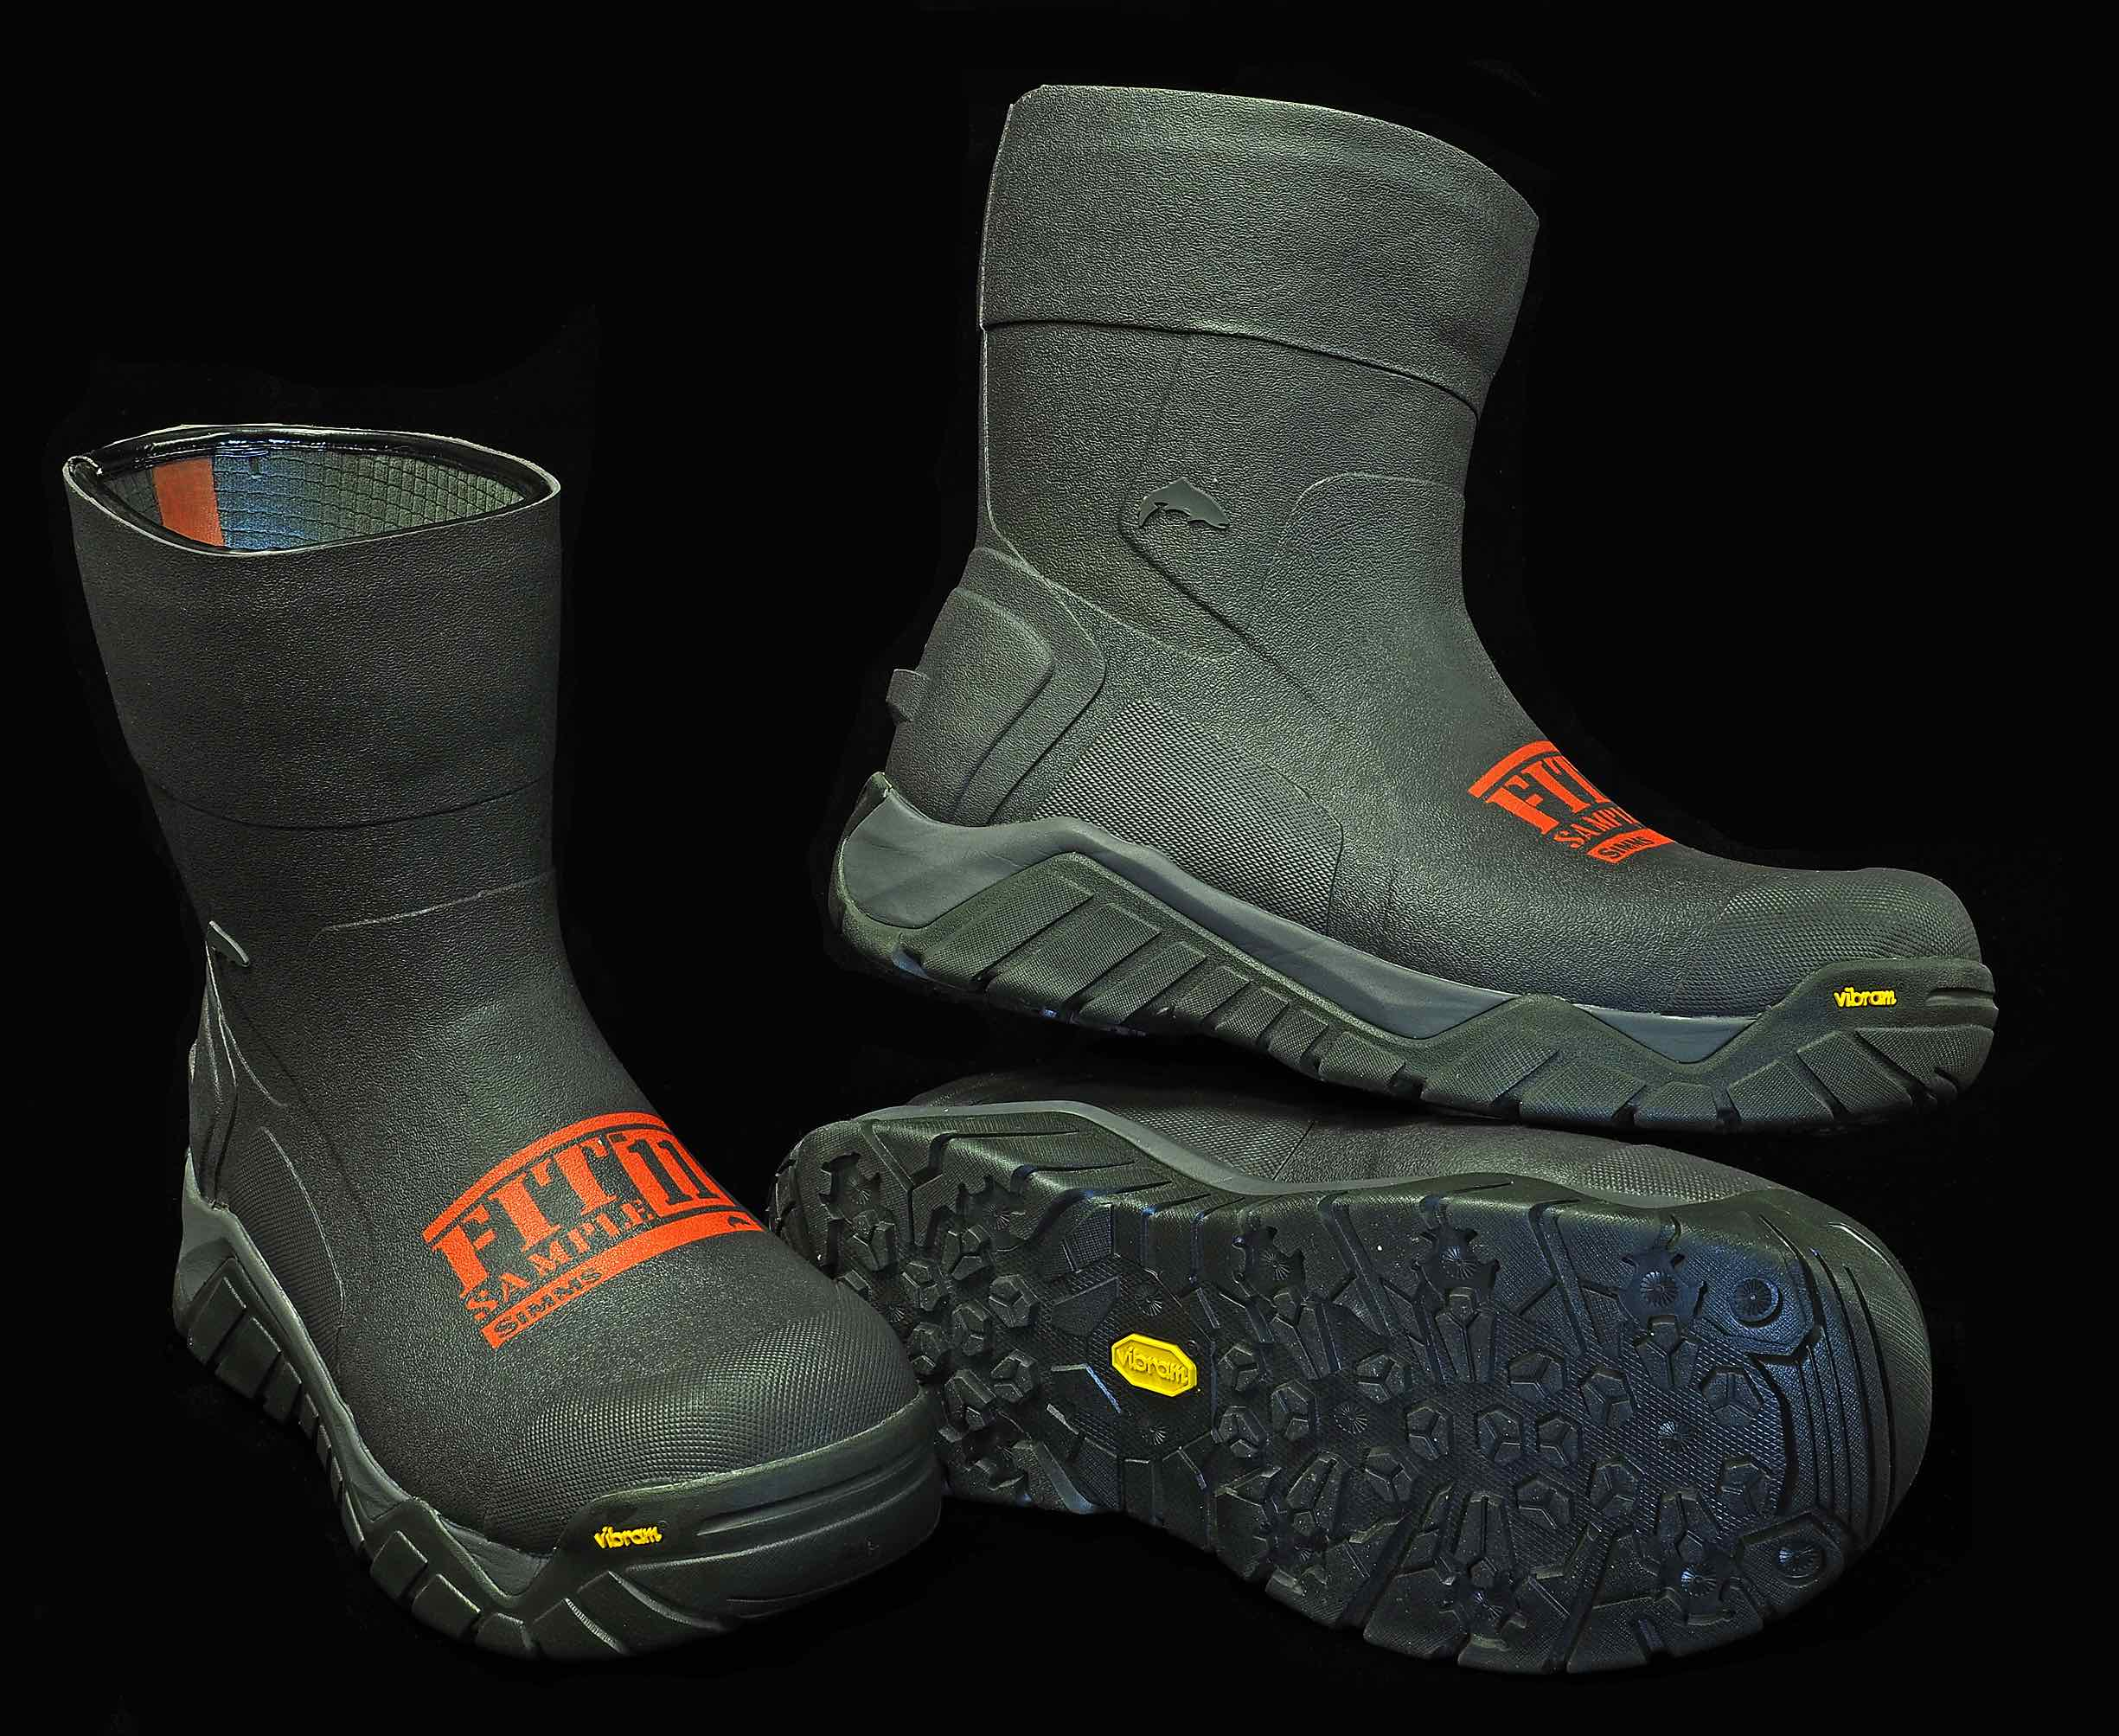 2017 Simms Vibram Boot Fit Kit.